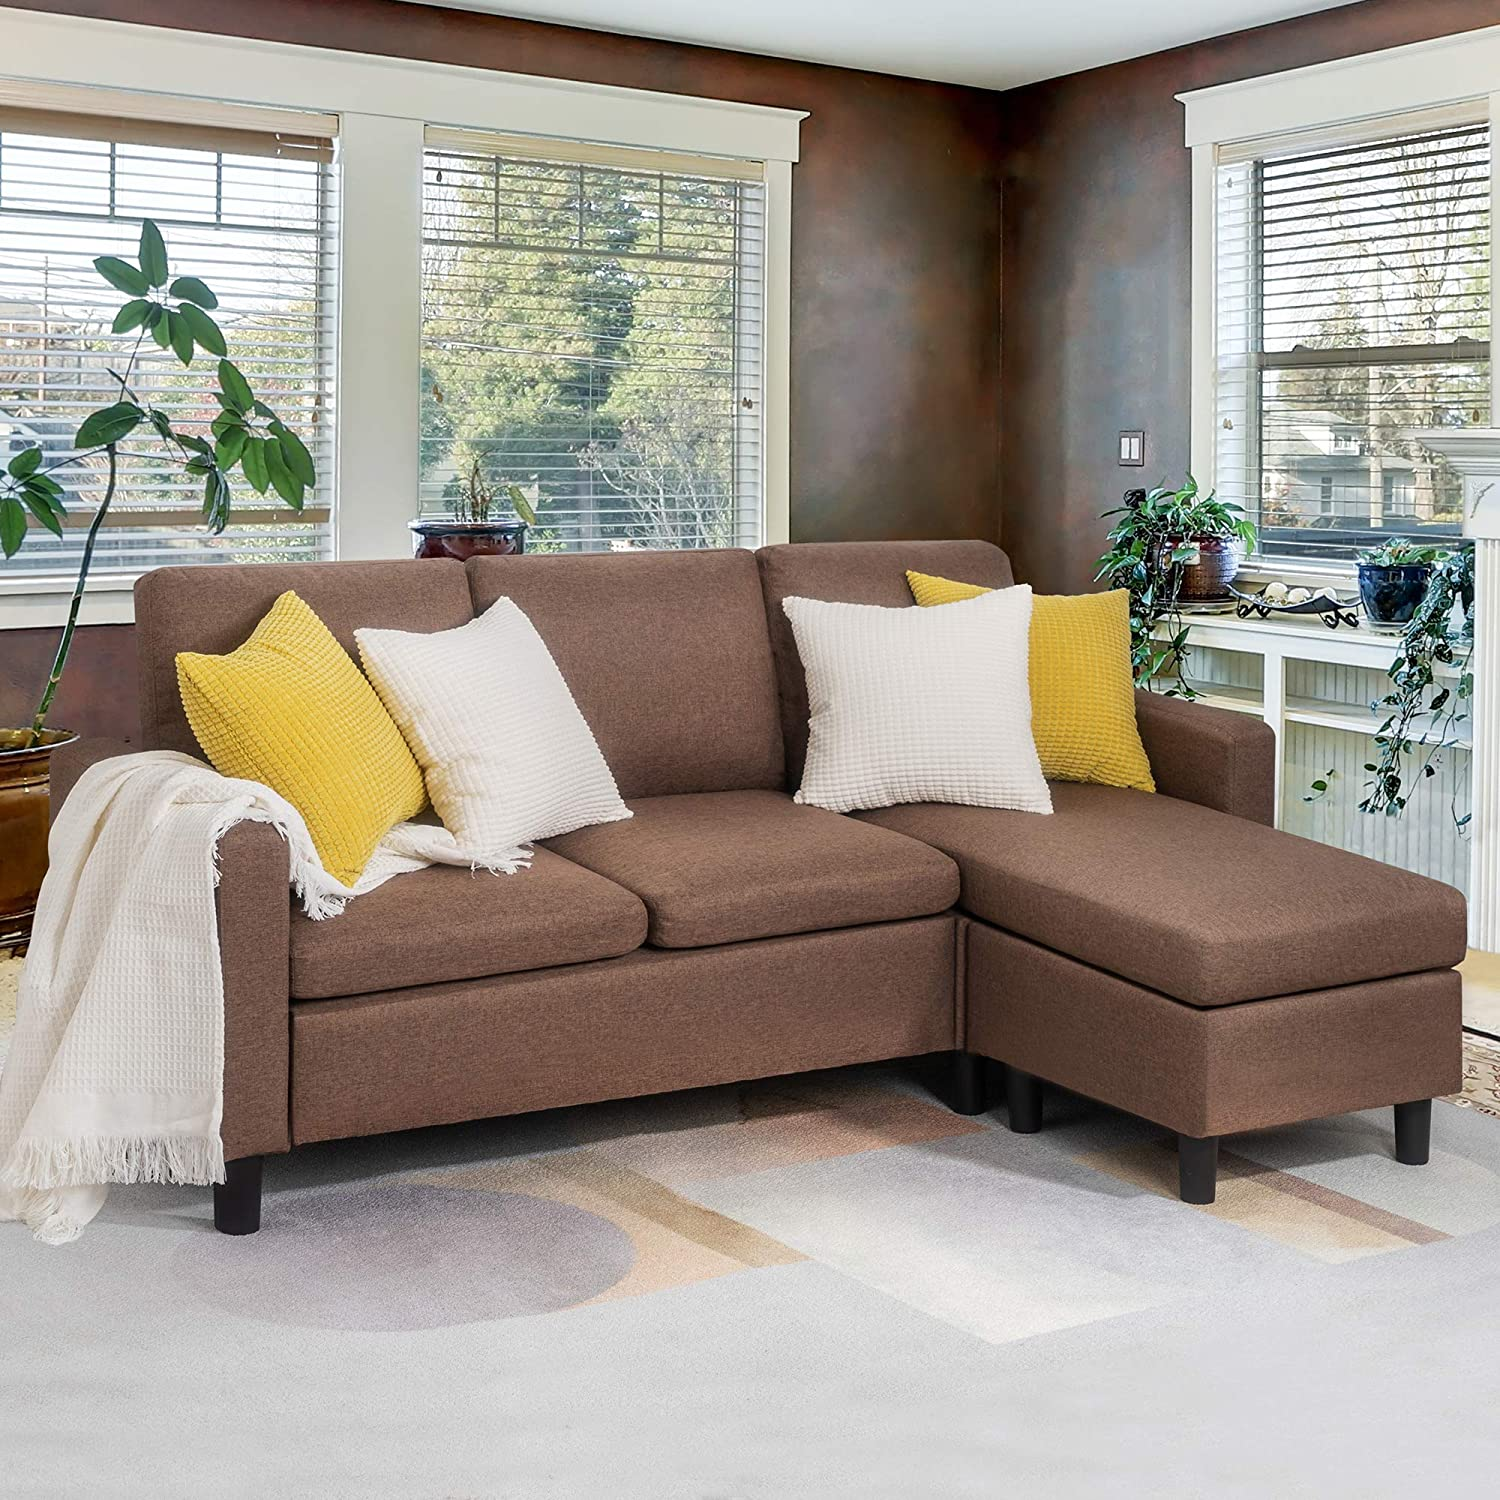 Amazon Com Jy Qaqa Sectional Sofa Couch Convertible Chaise Lounge